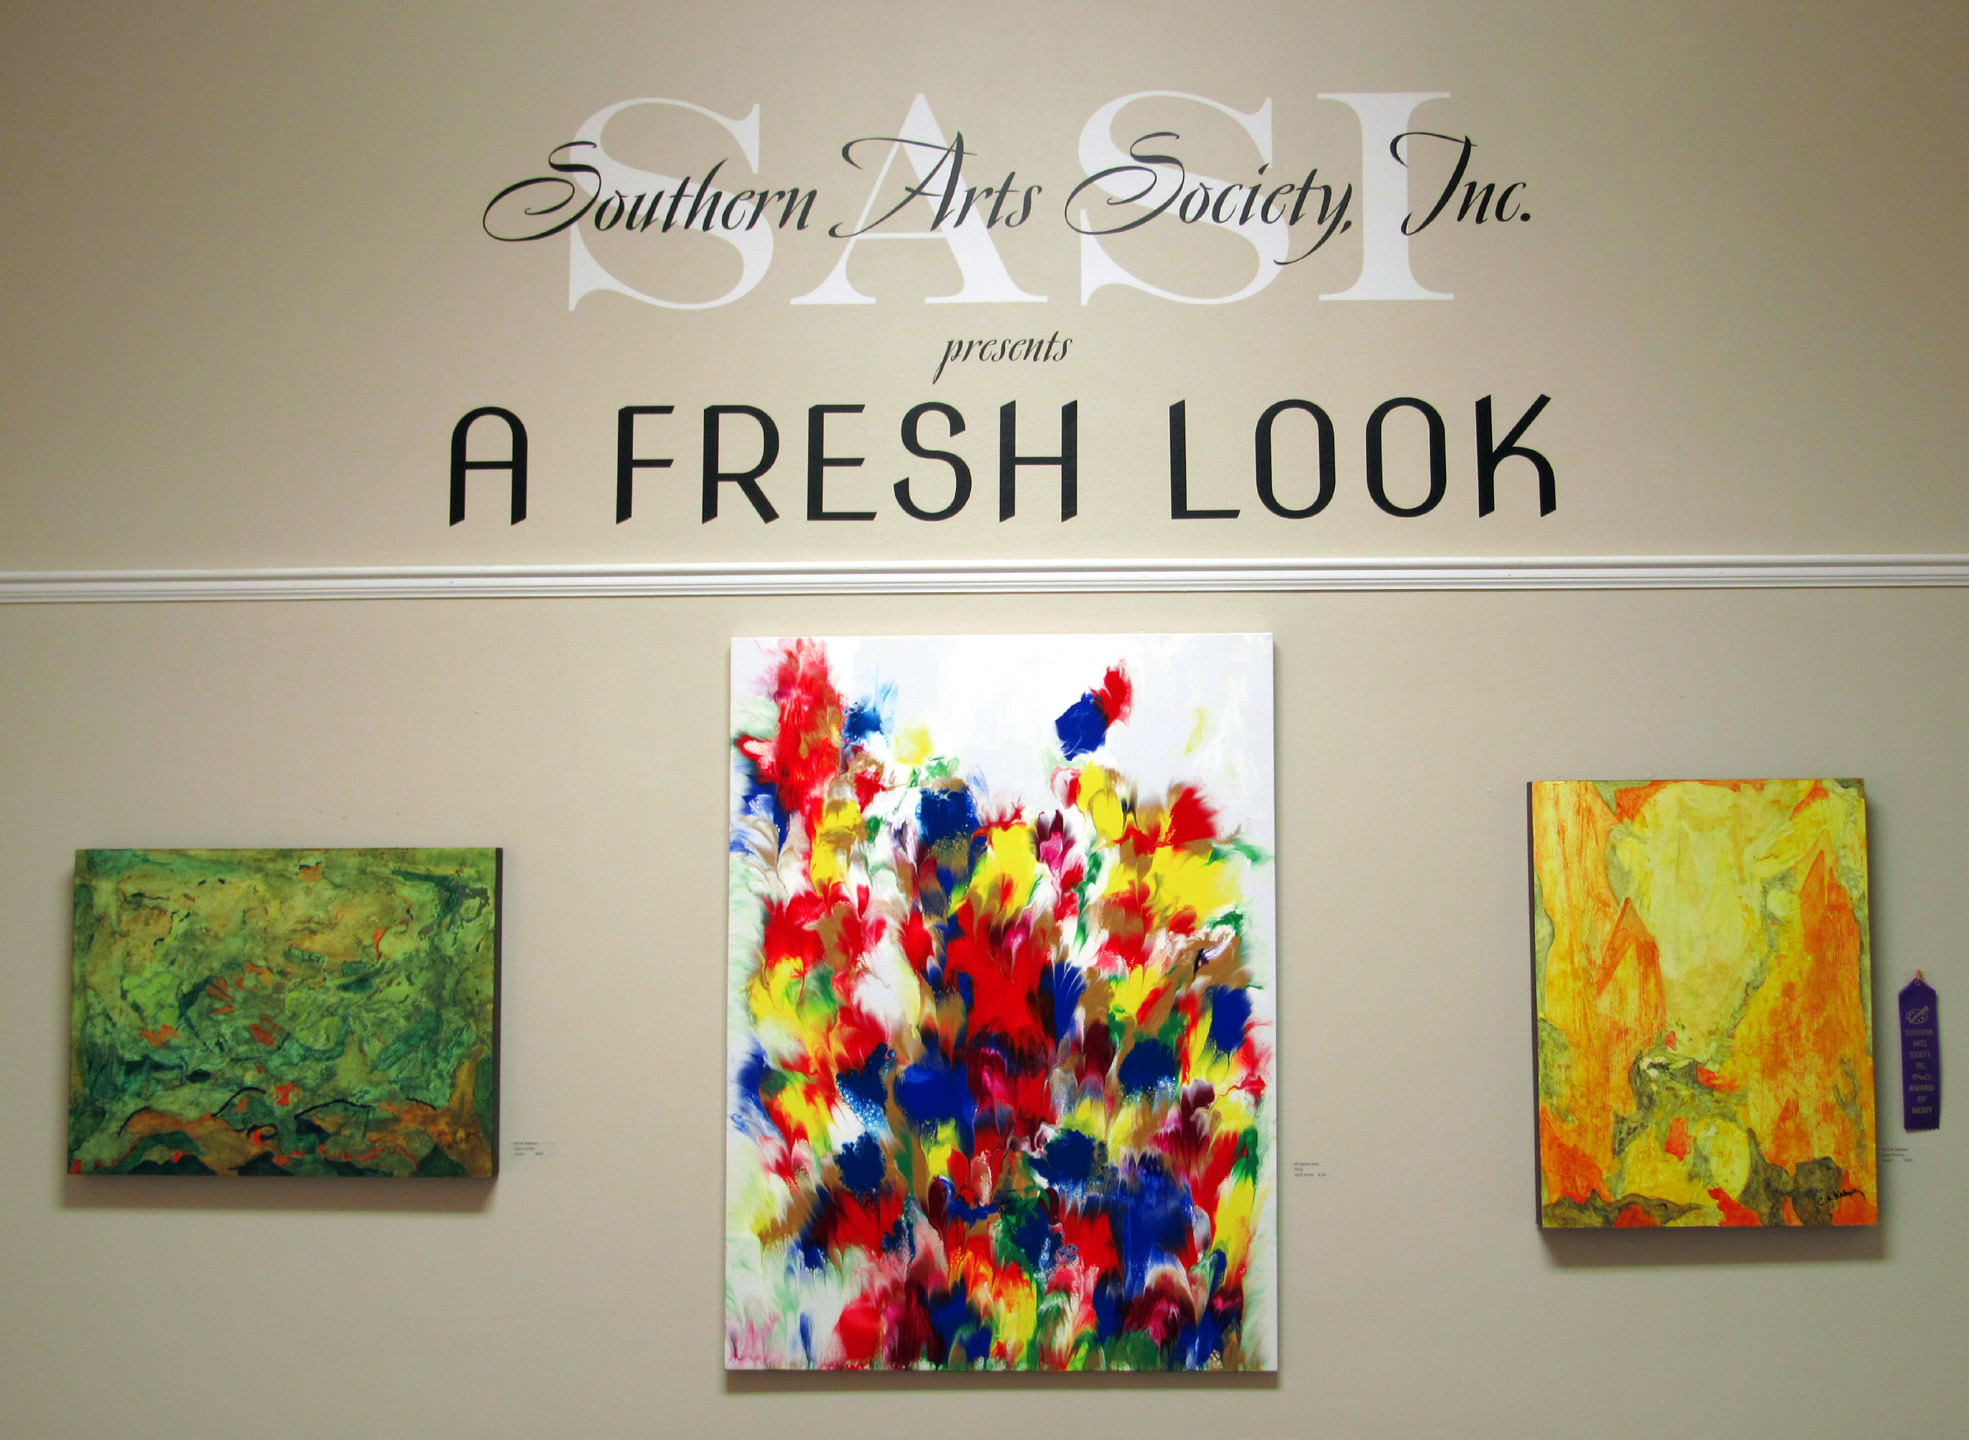 entrance into A Fresh Look 2020 Exhibit